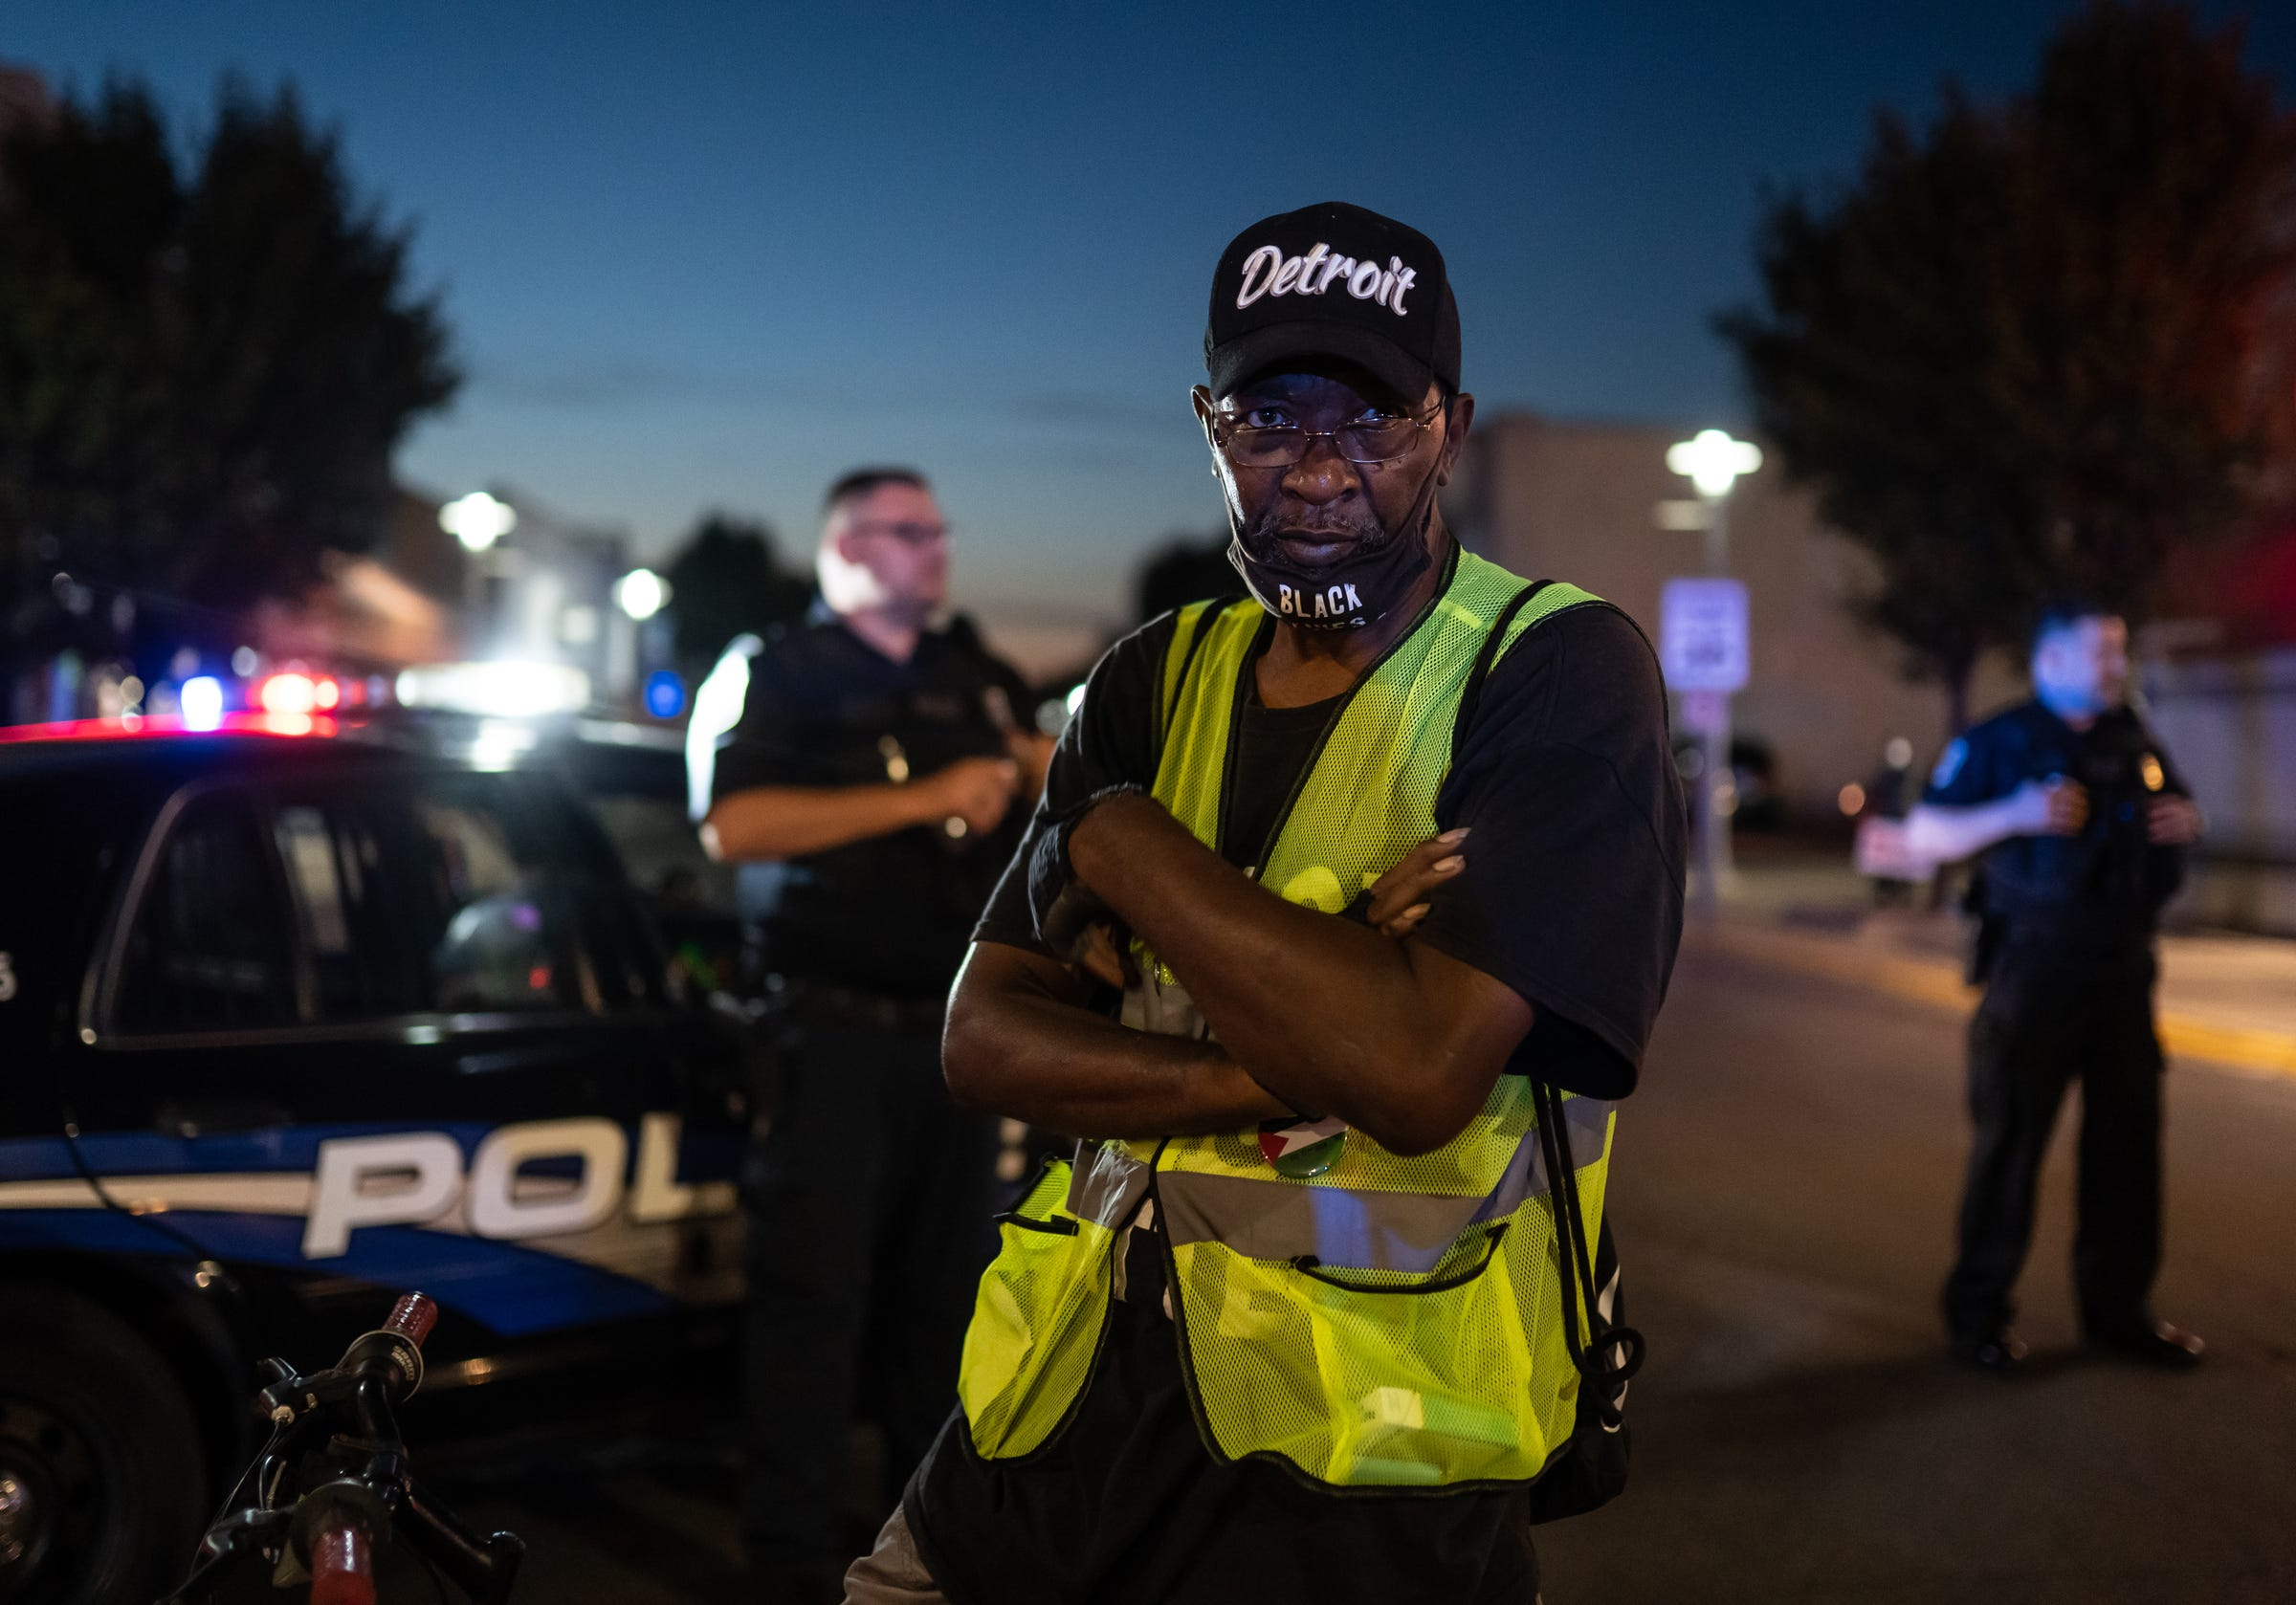 Darnell Grant of Detroit helps block the path with his bike as Hamtramck Police stand by during the Justice for Yemen march in Hamtramck on Thursday, August 20, 2020.